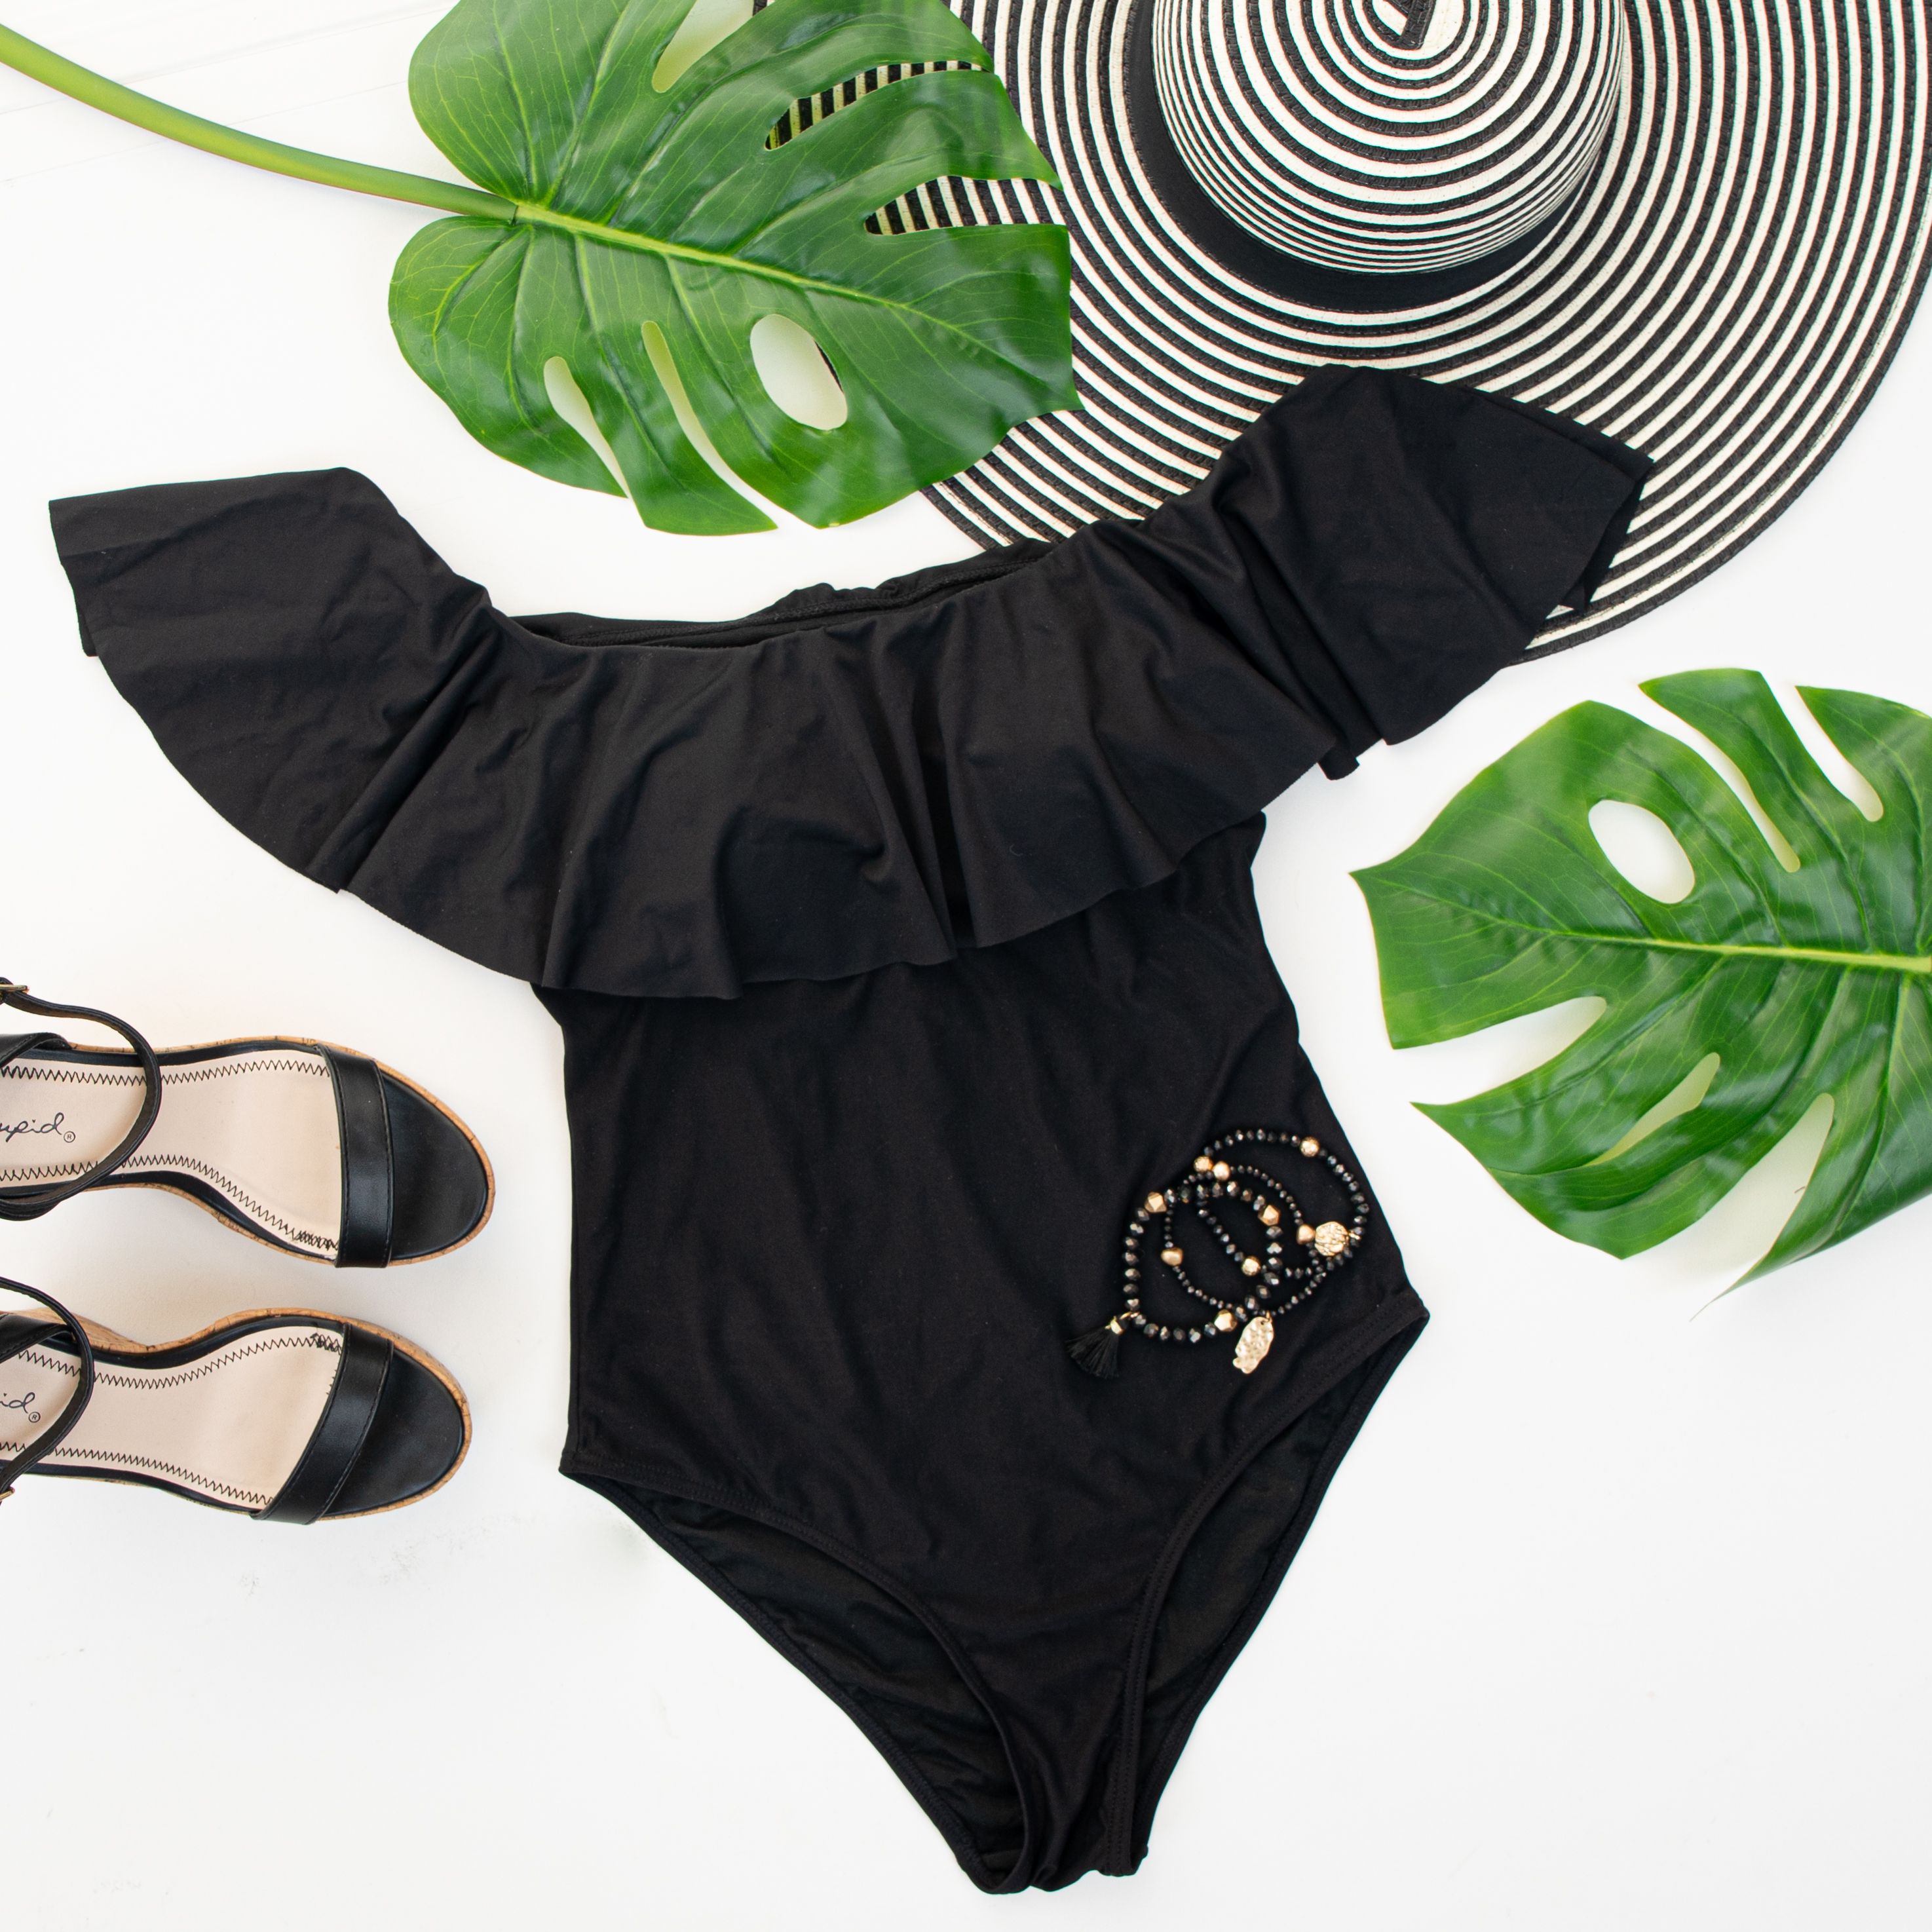 Black Off the Shoulder Swimsuit with Ruffle Overlay